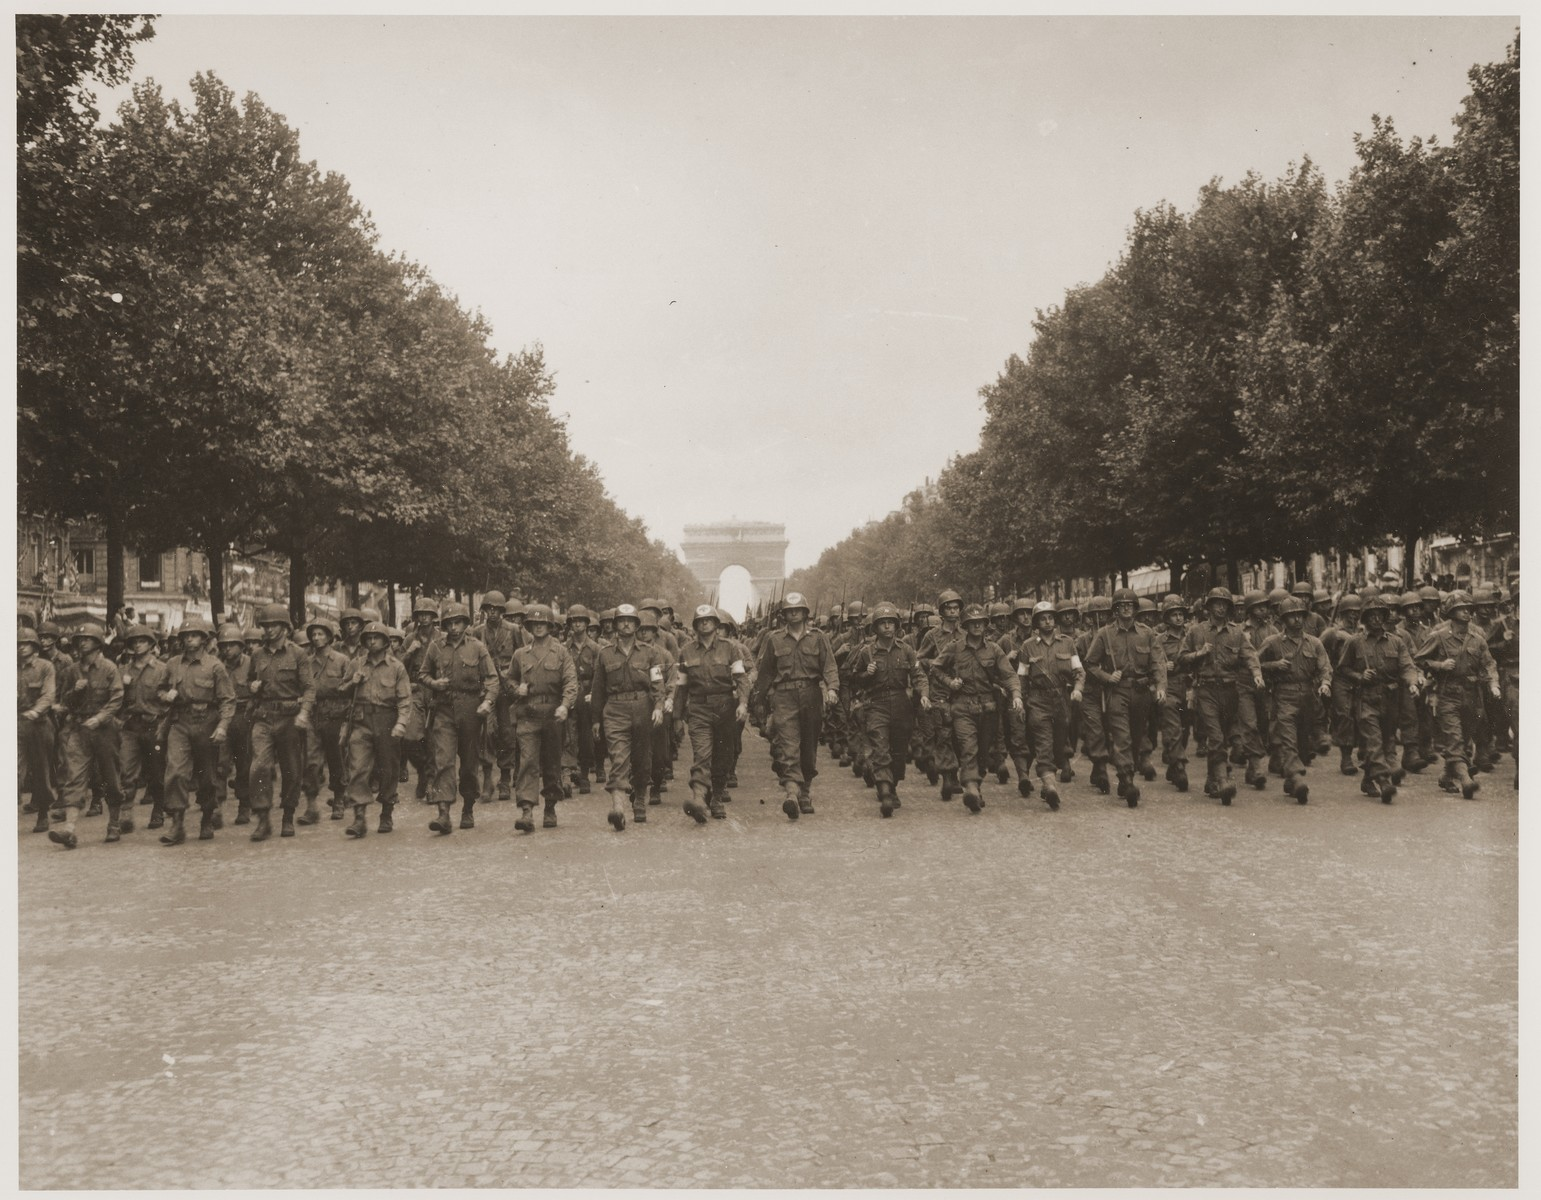 American troops of the 28th Infantry Division march down the Champs Elysees, Paris, in a victory parade.